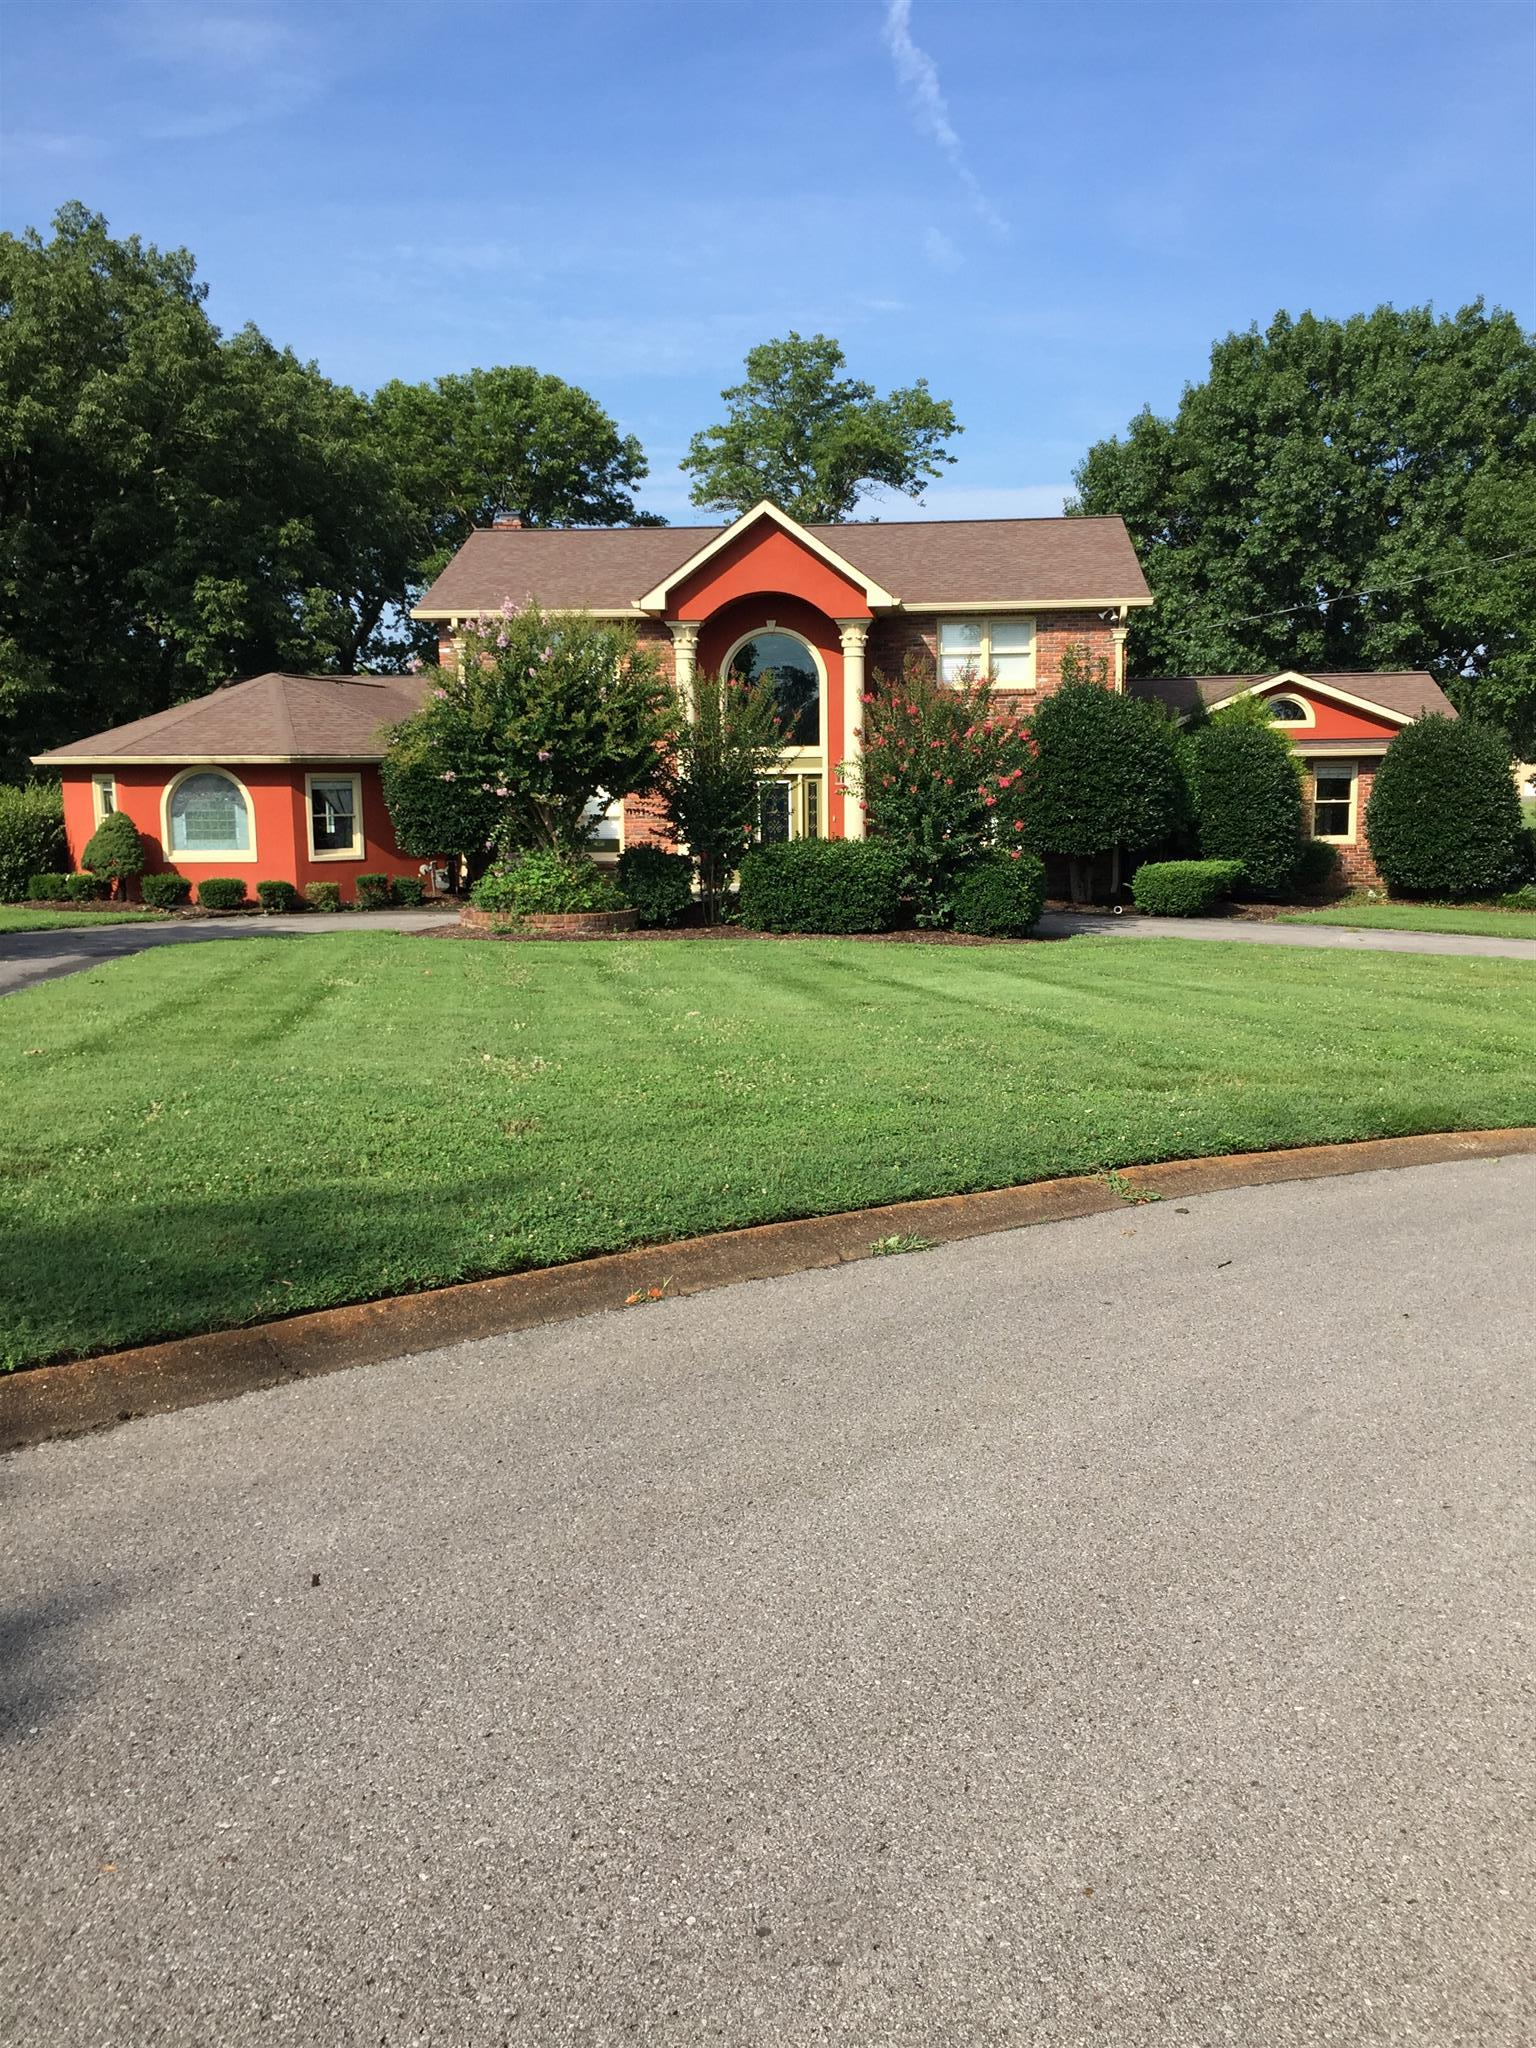 104 Kennett Rd, Old Hickory, TN 37138 - Old Hickory, TN real estate listing